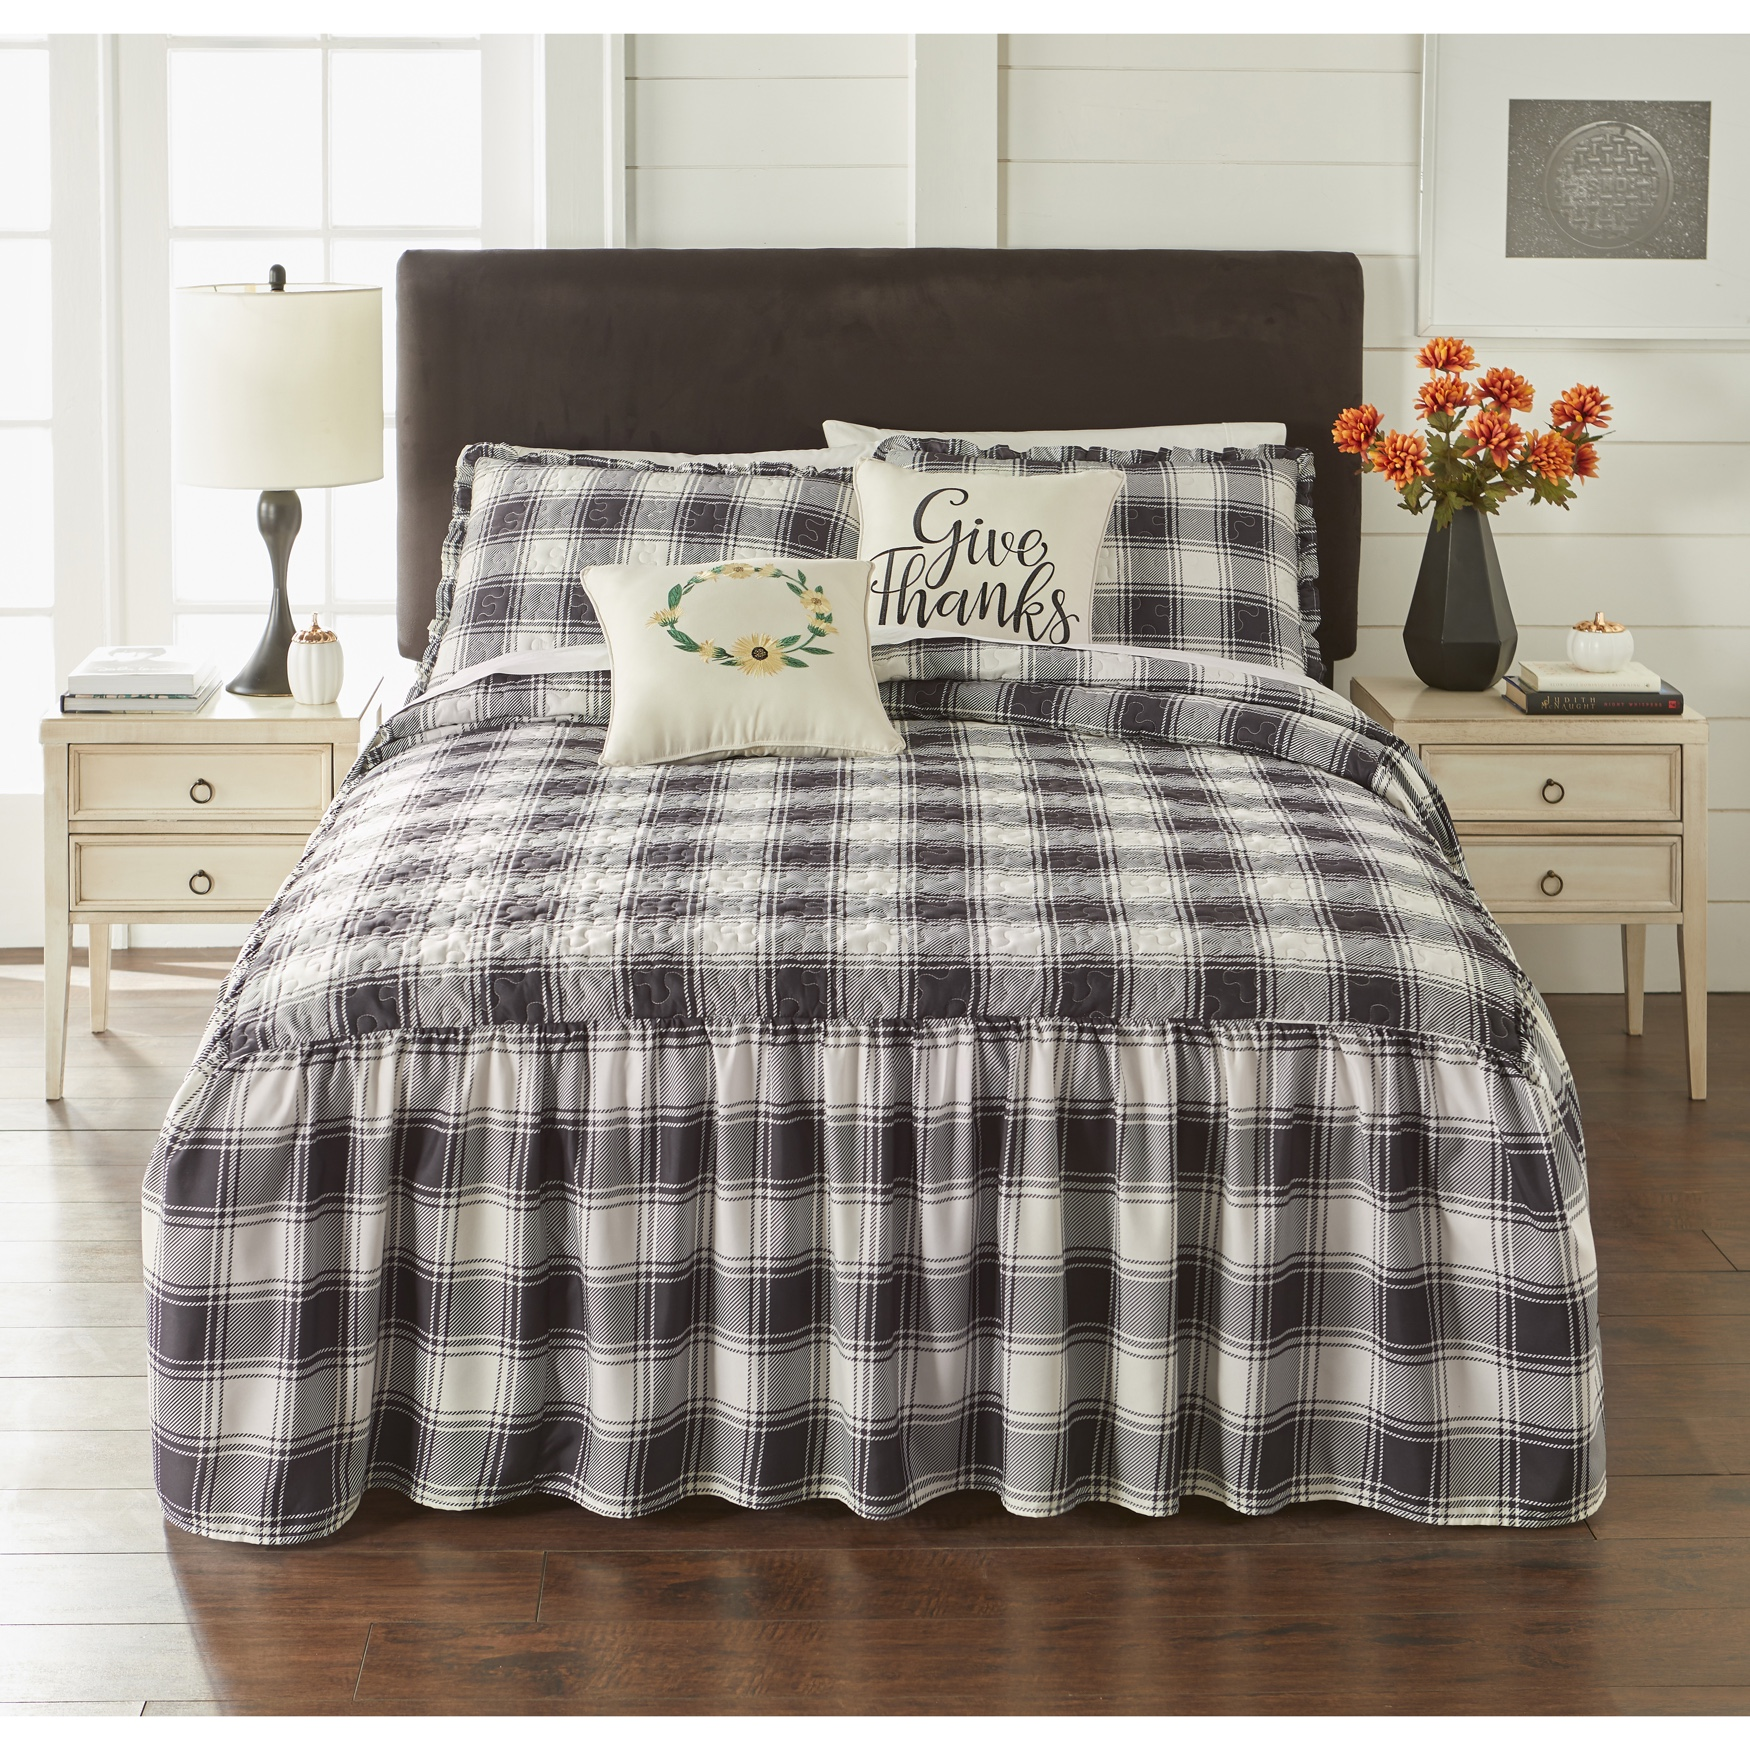 Farmhouse Flounce 5-Pc. Bedspread Set,